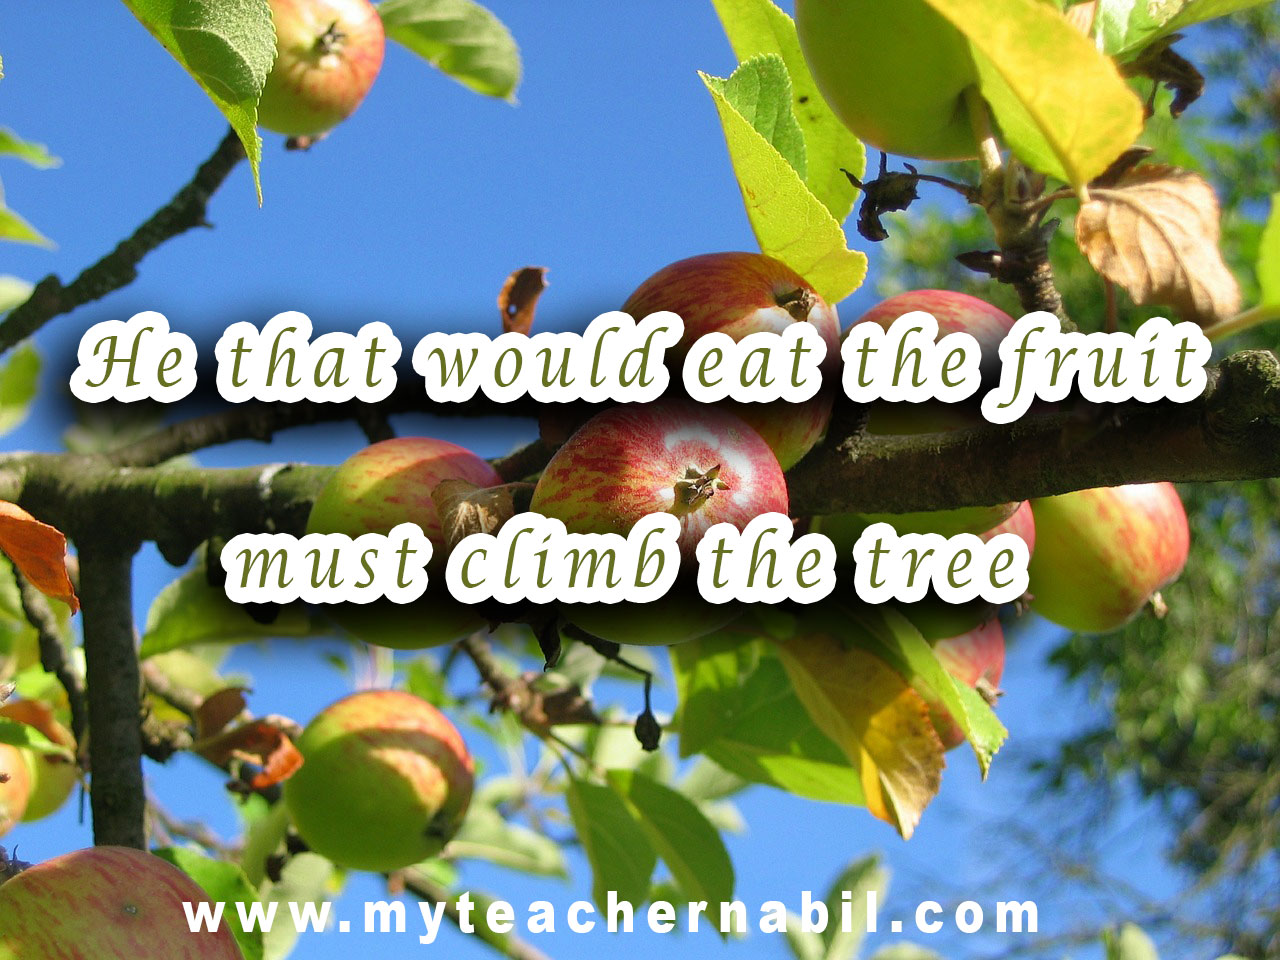 He that would eat the fruit must climb the tree